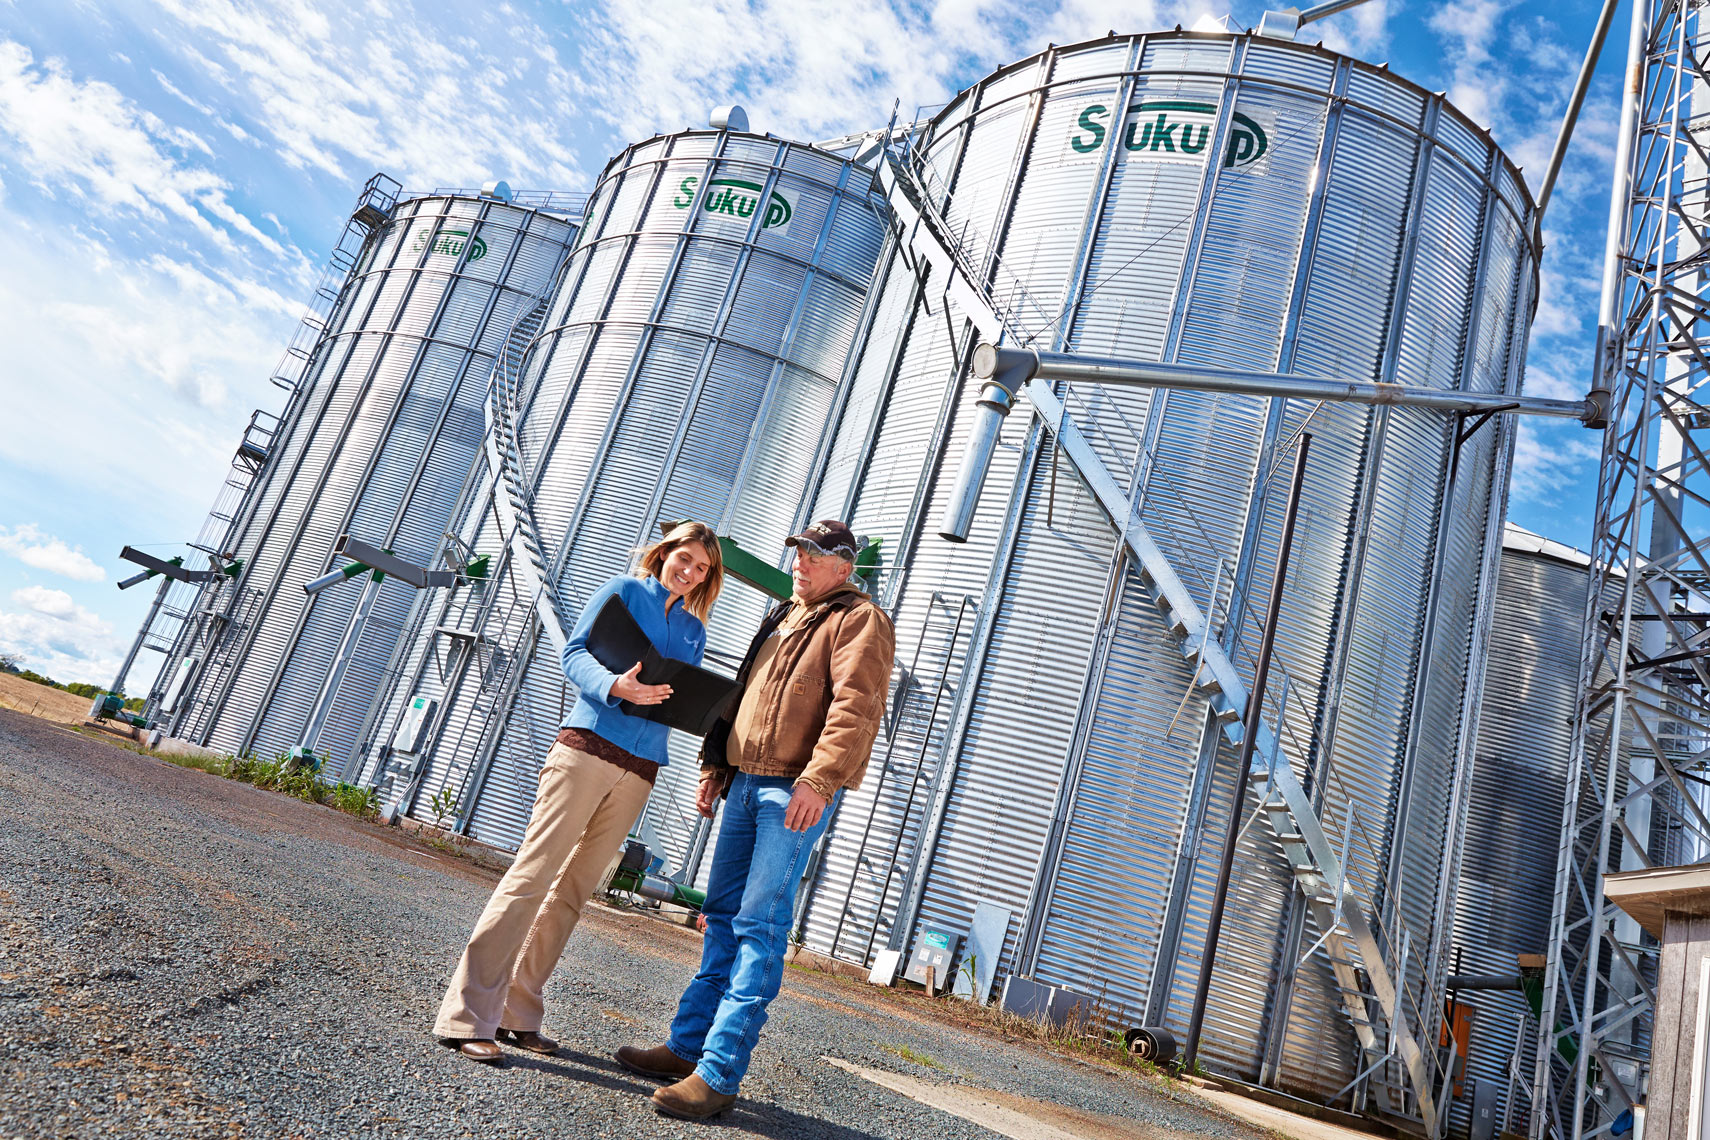 Bremer Bank/farmland/Silos/banker, farme/lifestyle people photo